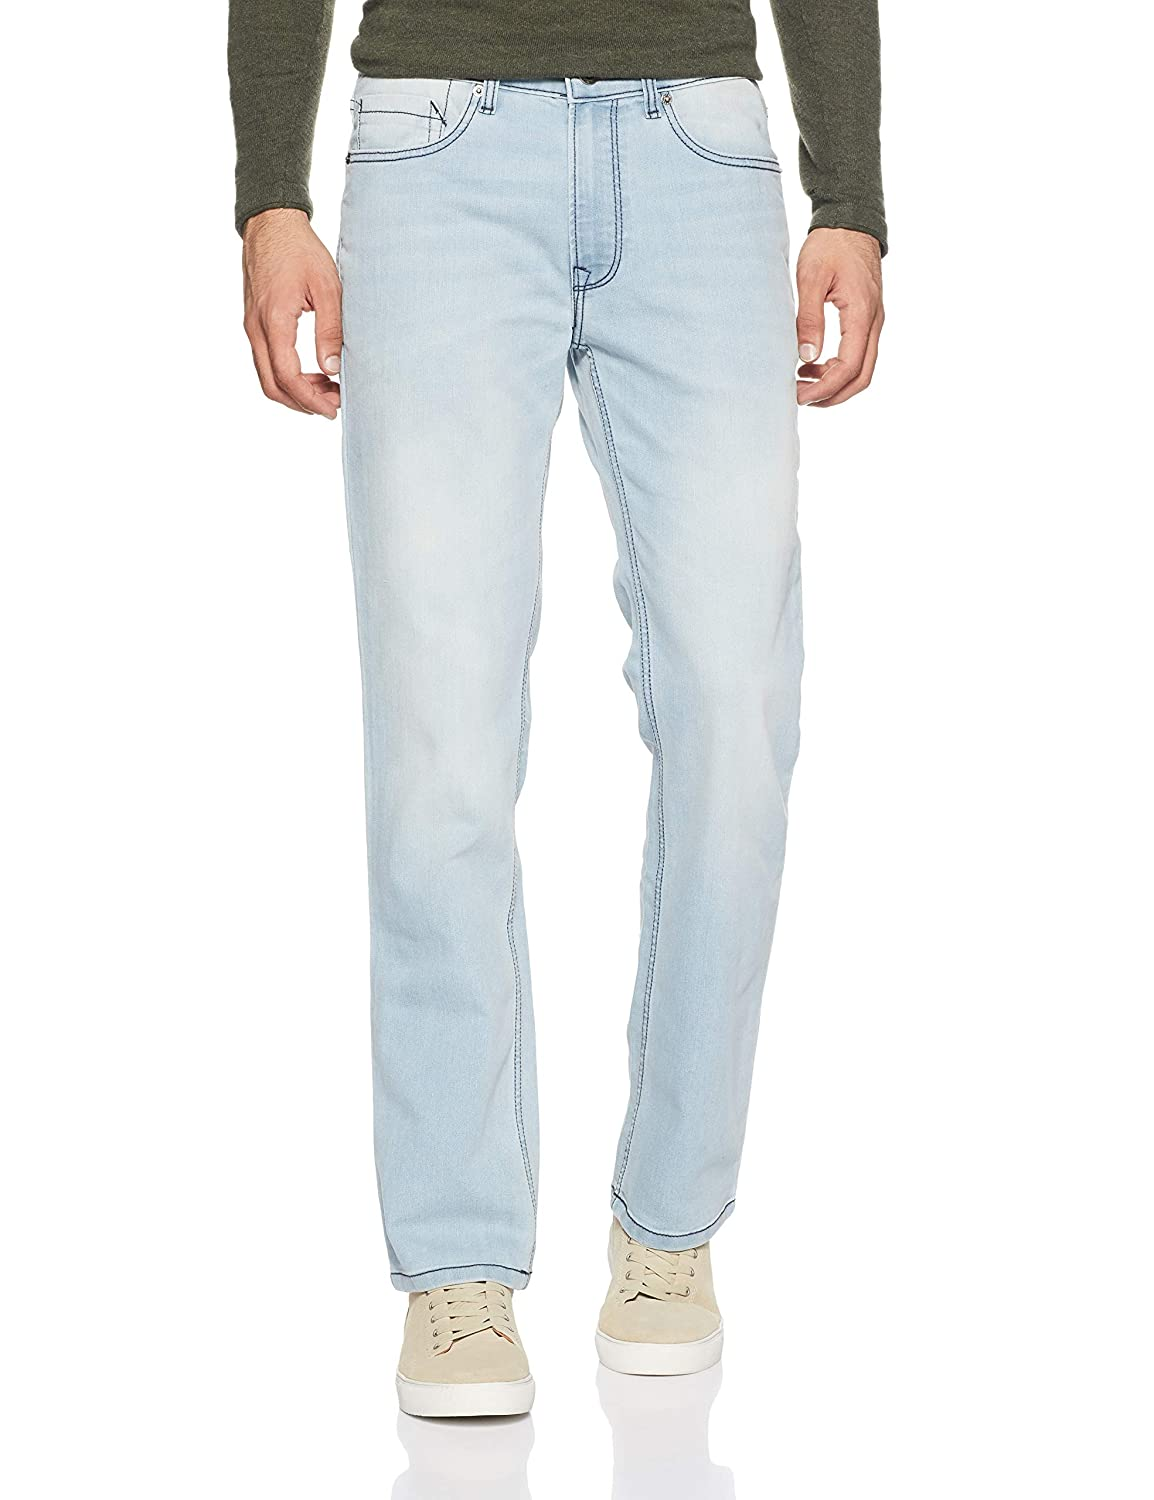 Buy Pepe Jeans Men S Relaxed Fit Jeans Pm204298f56 Blue 34w X 32l At Amazon In